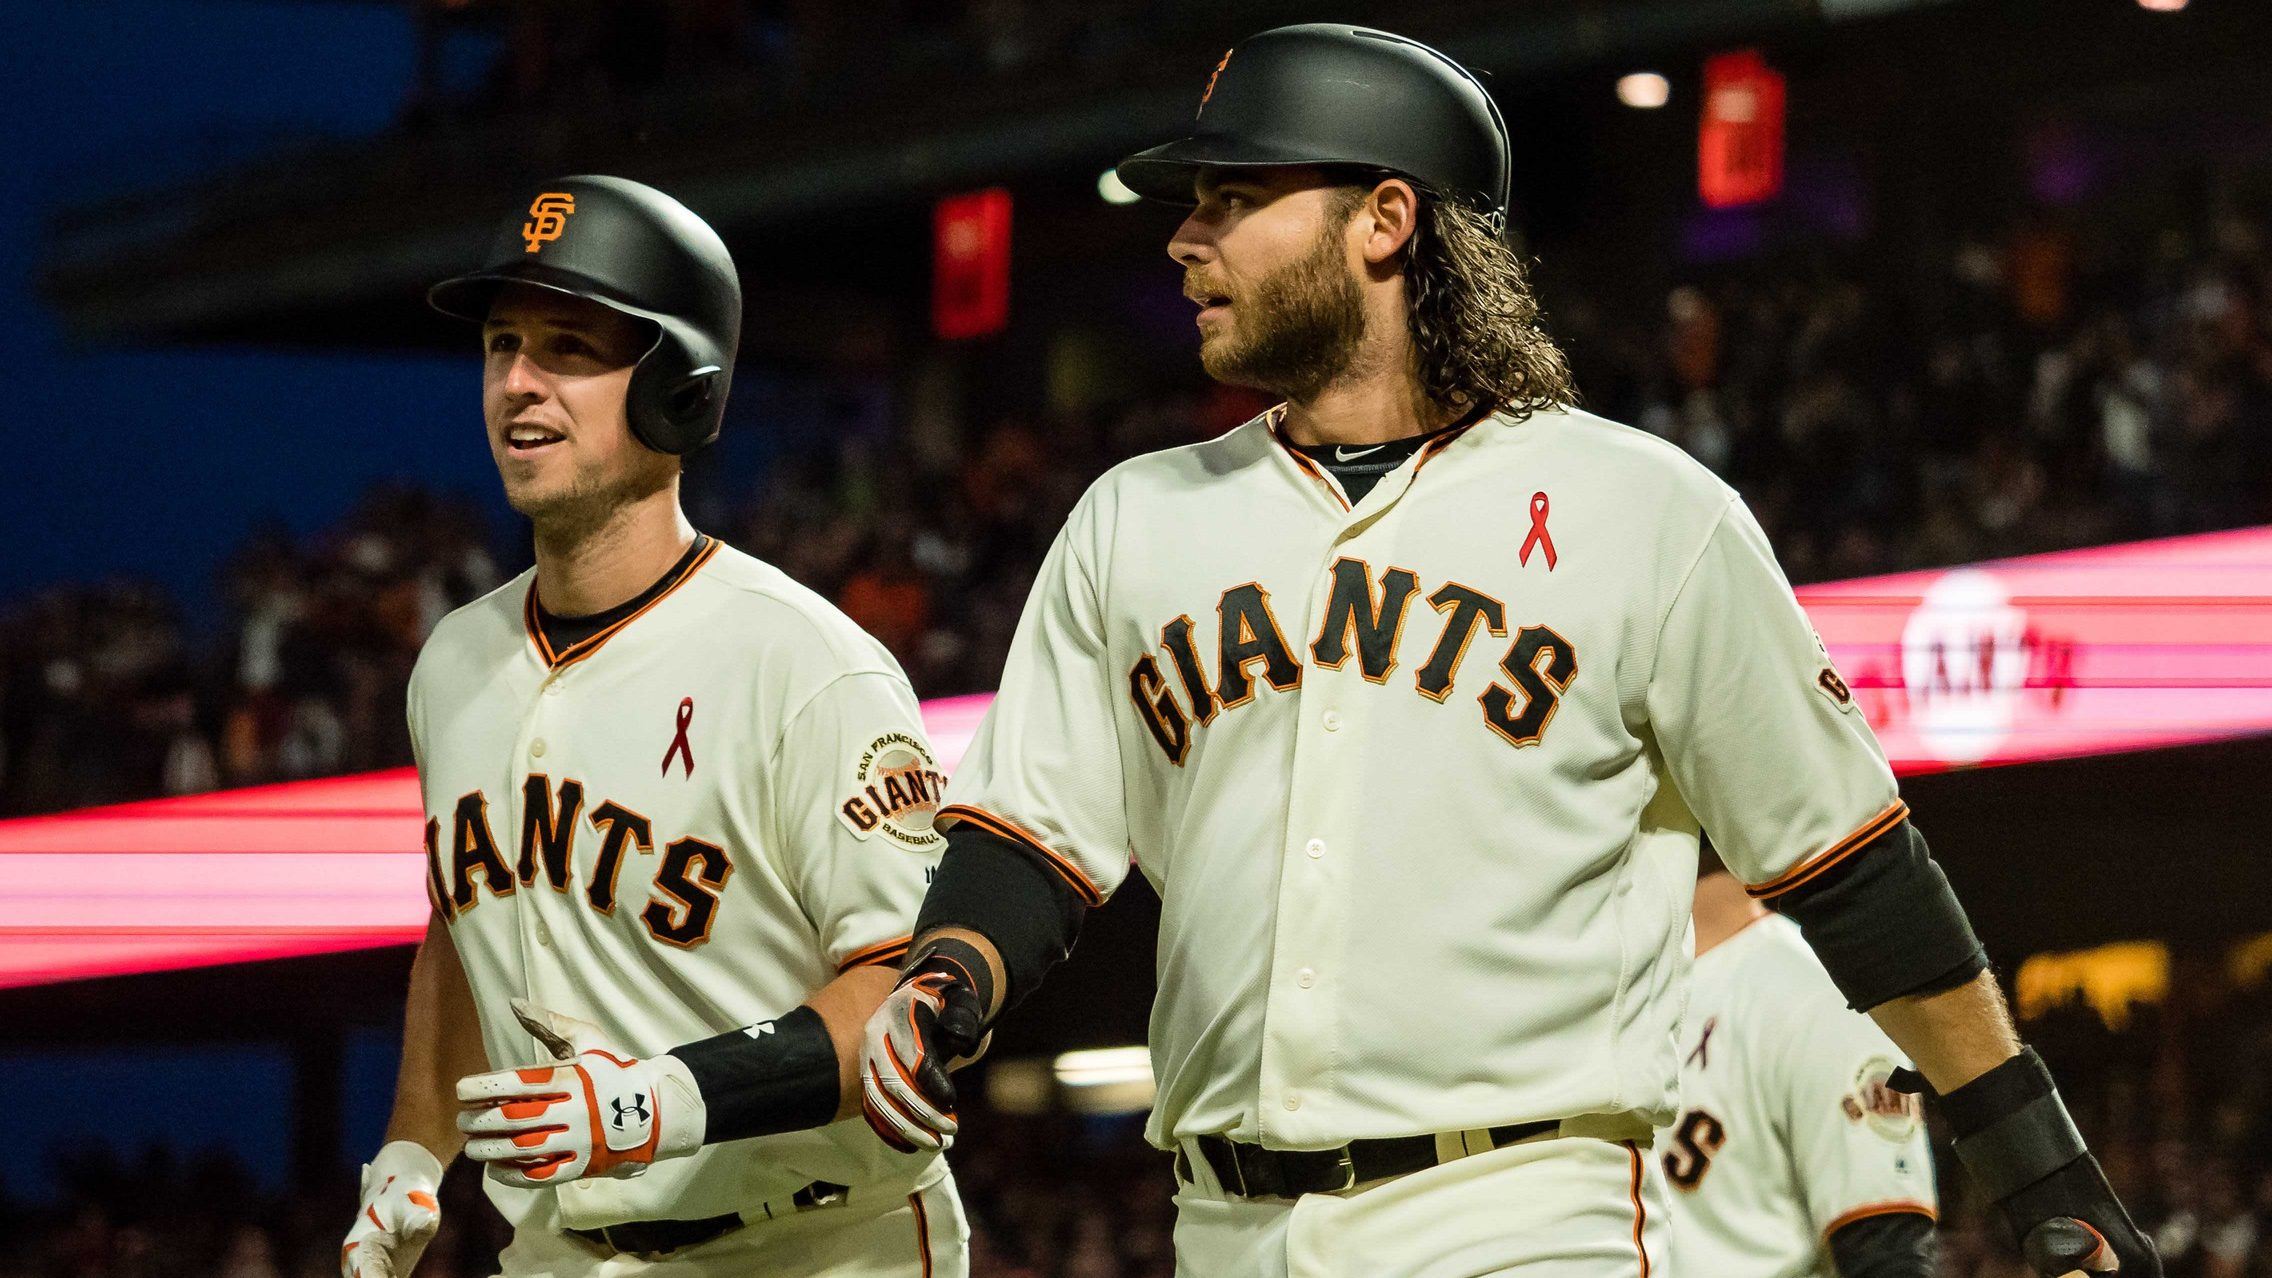 MLB trade deal San Francisco Giants Bumgarner Smith Watson Dyson